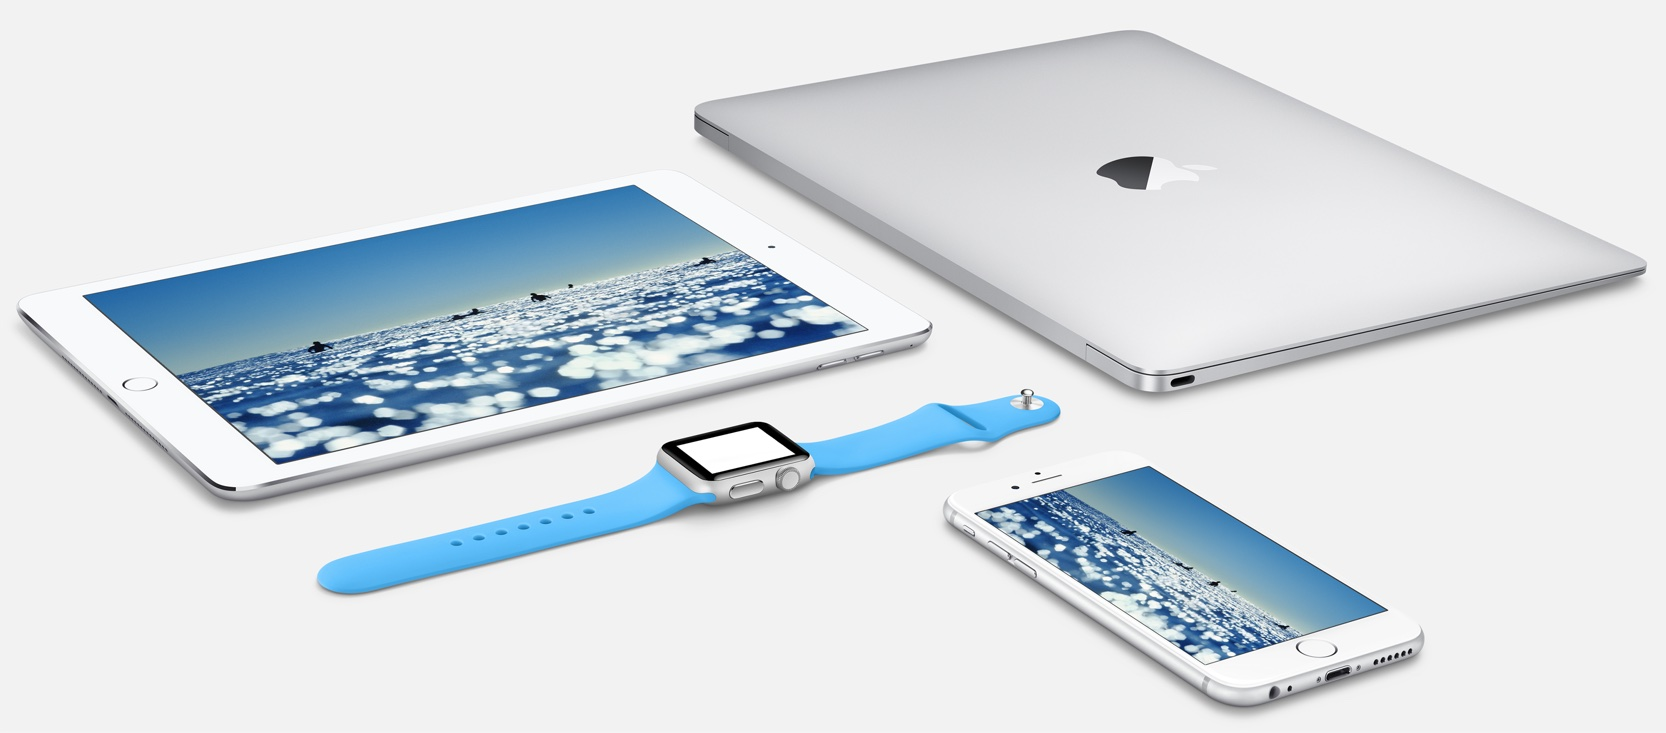 apple-watch-macbook-air-ipad-air-iphone-6-image-001.jpg